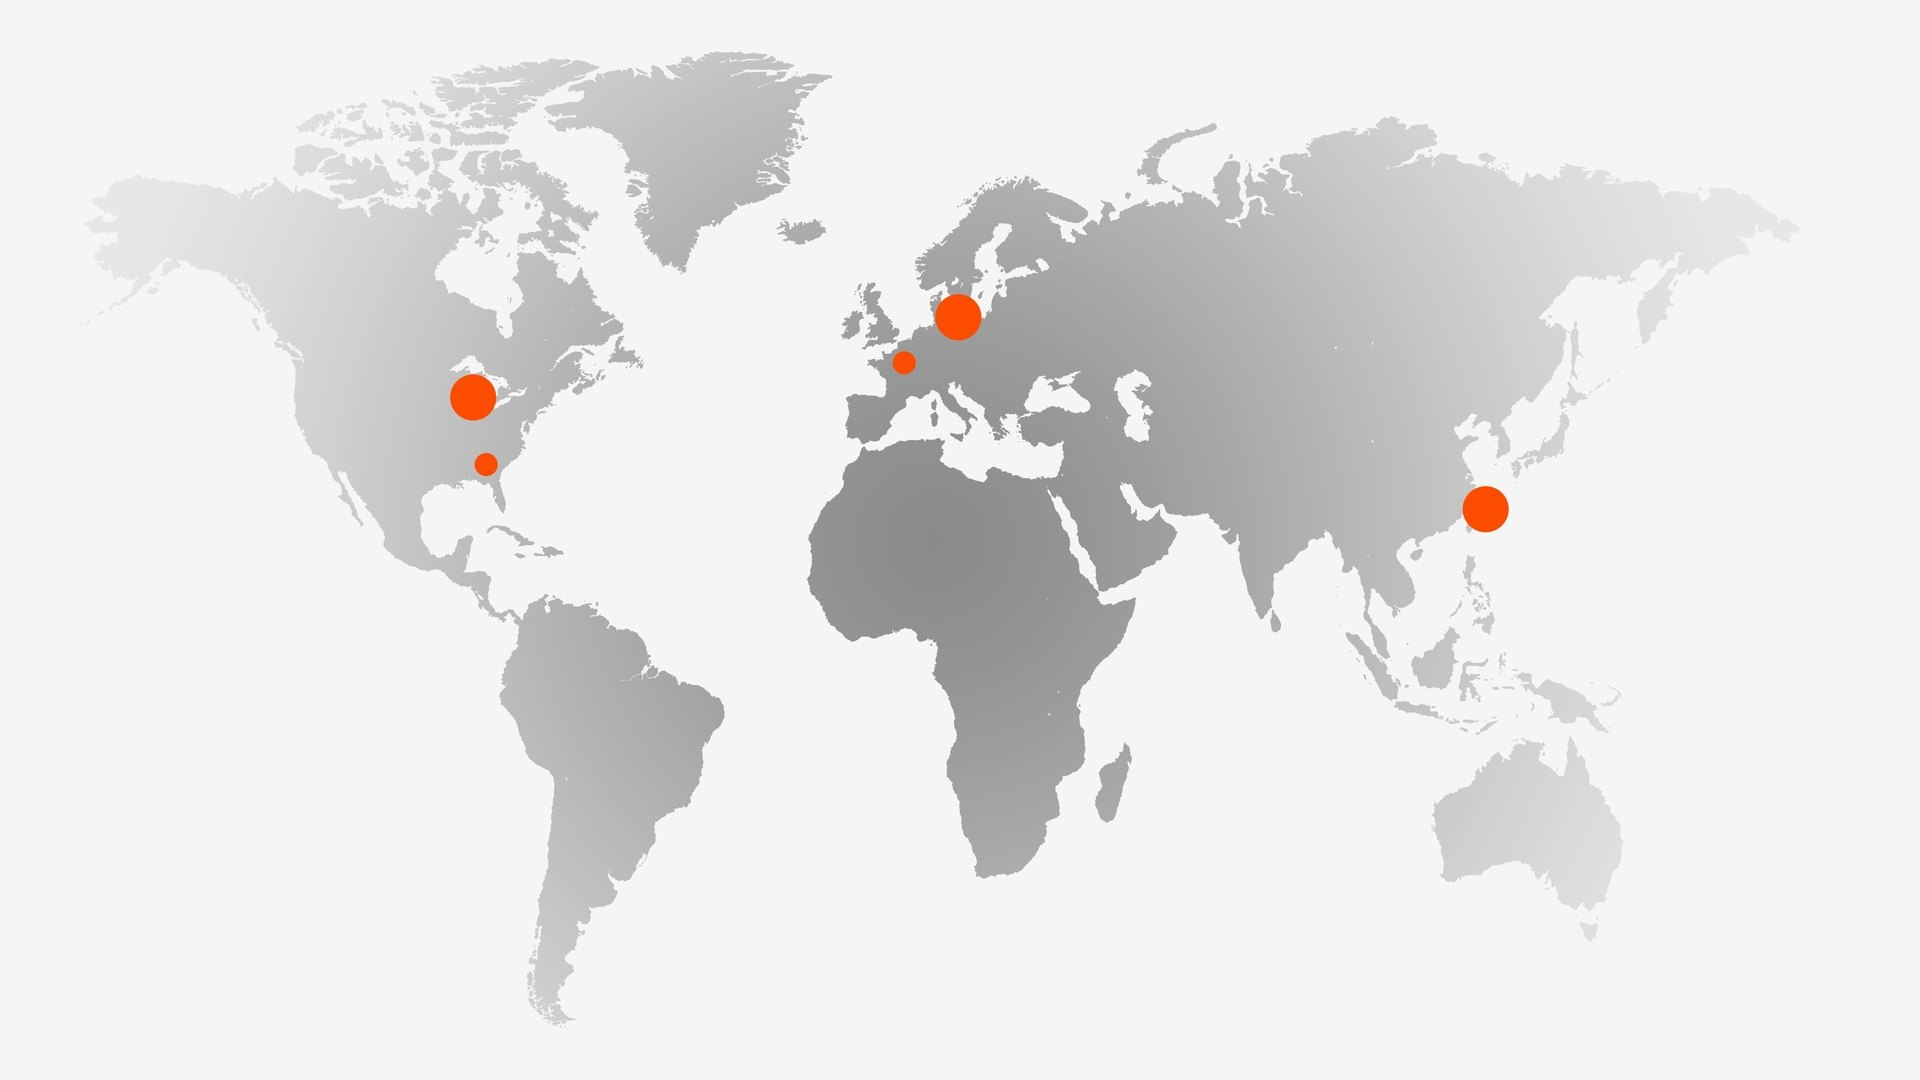 World map with dots in each city SteelSeries offices are located